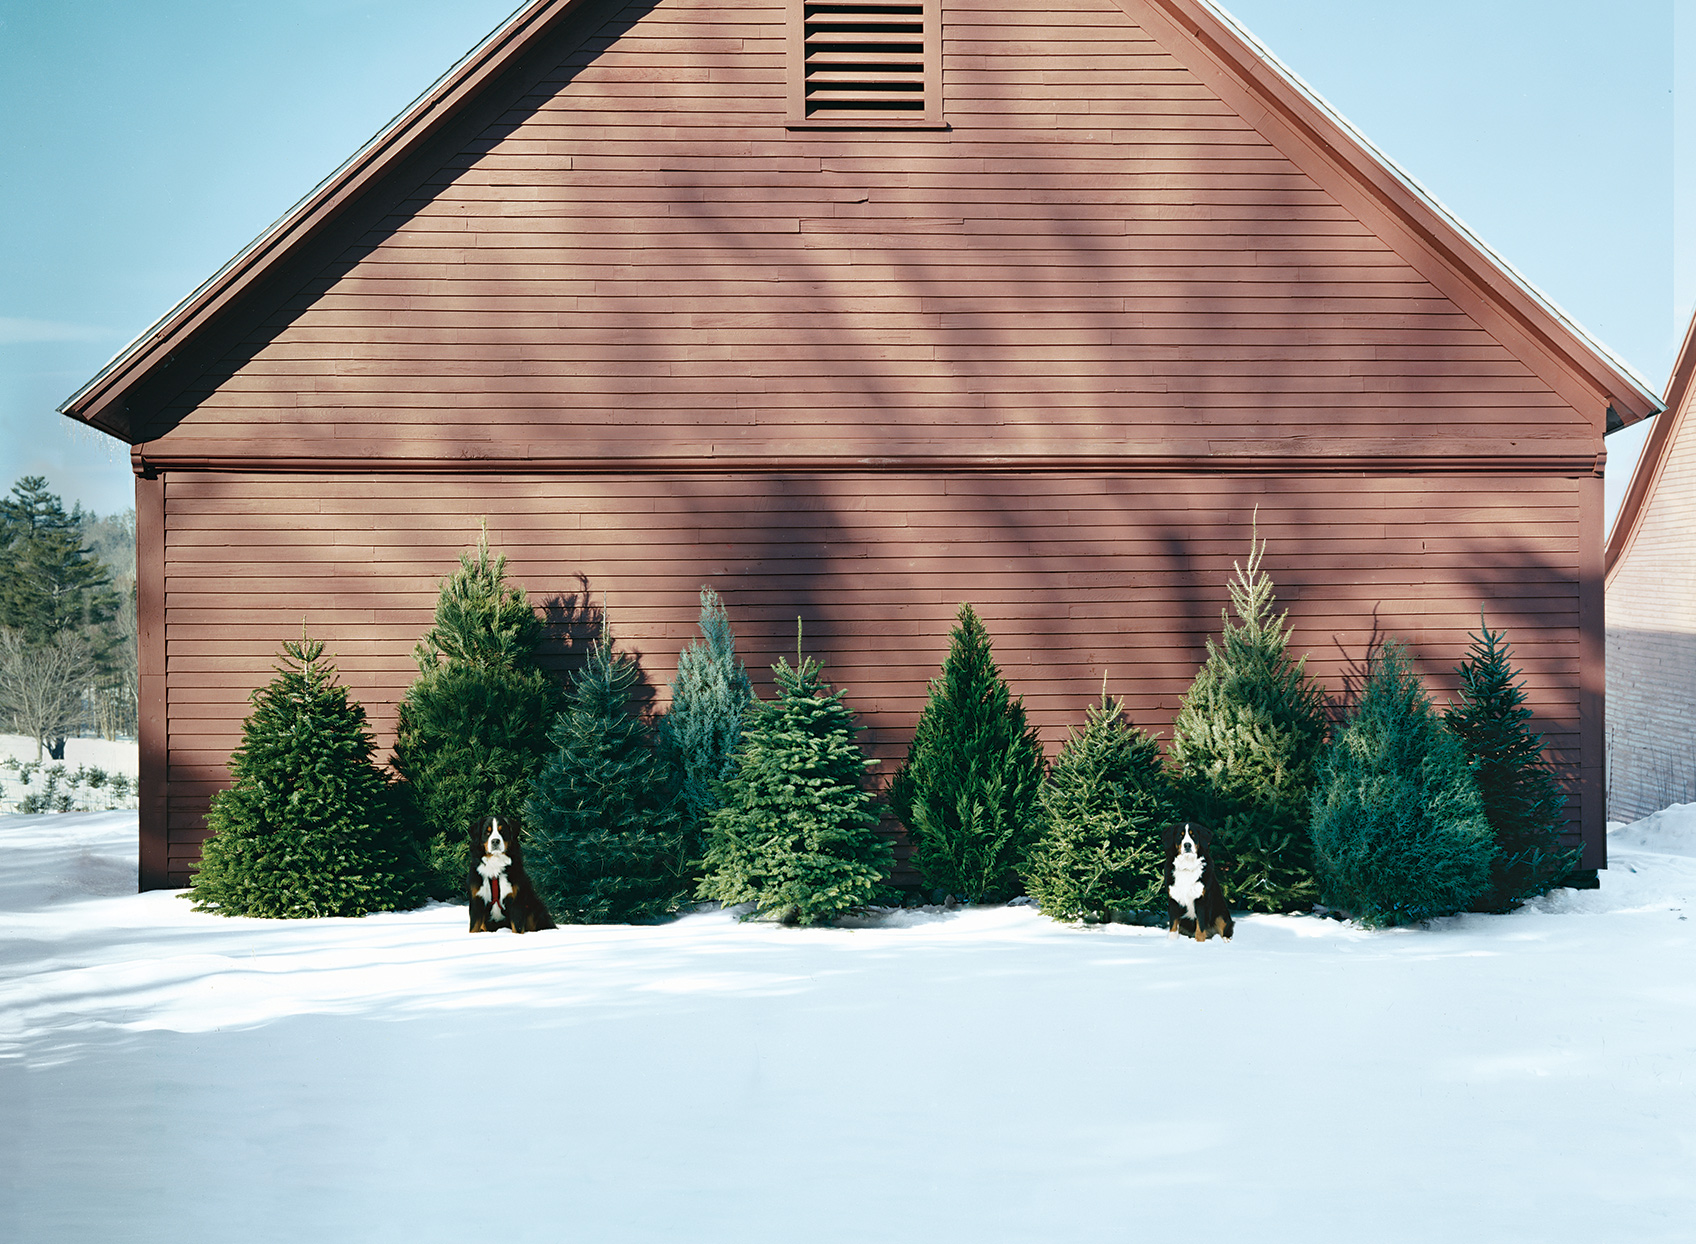 christmas trees in front of brown building